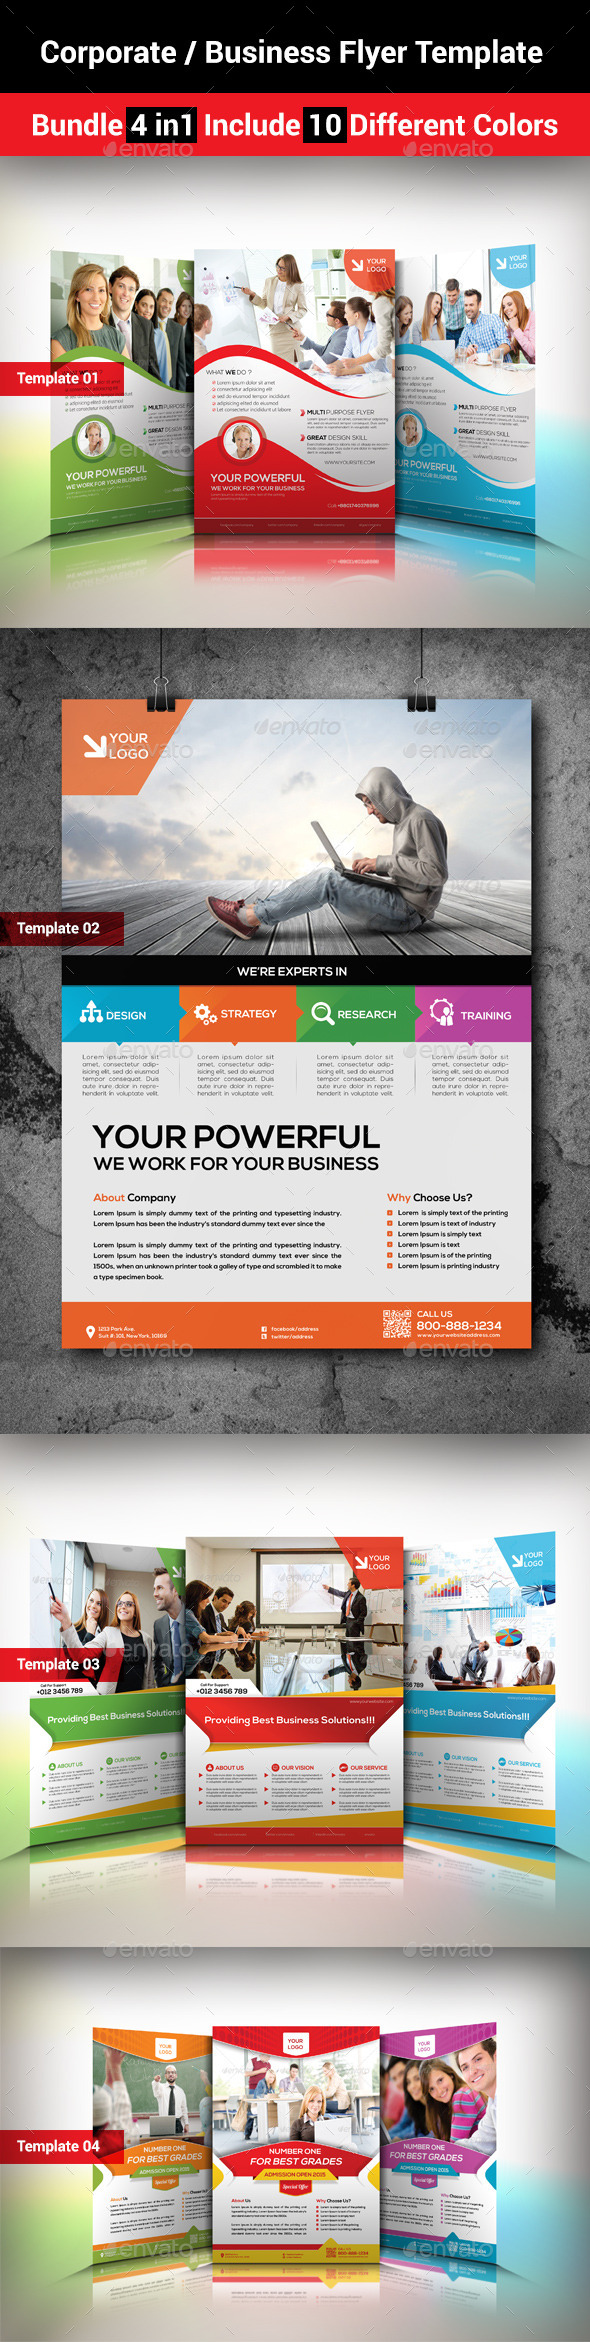 Corporate / Business Flyer Template Bundle 4 in1  - Corporate Business Cards